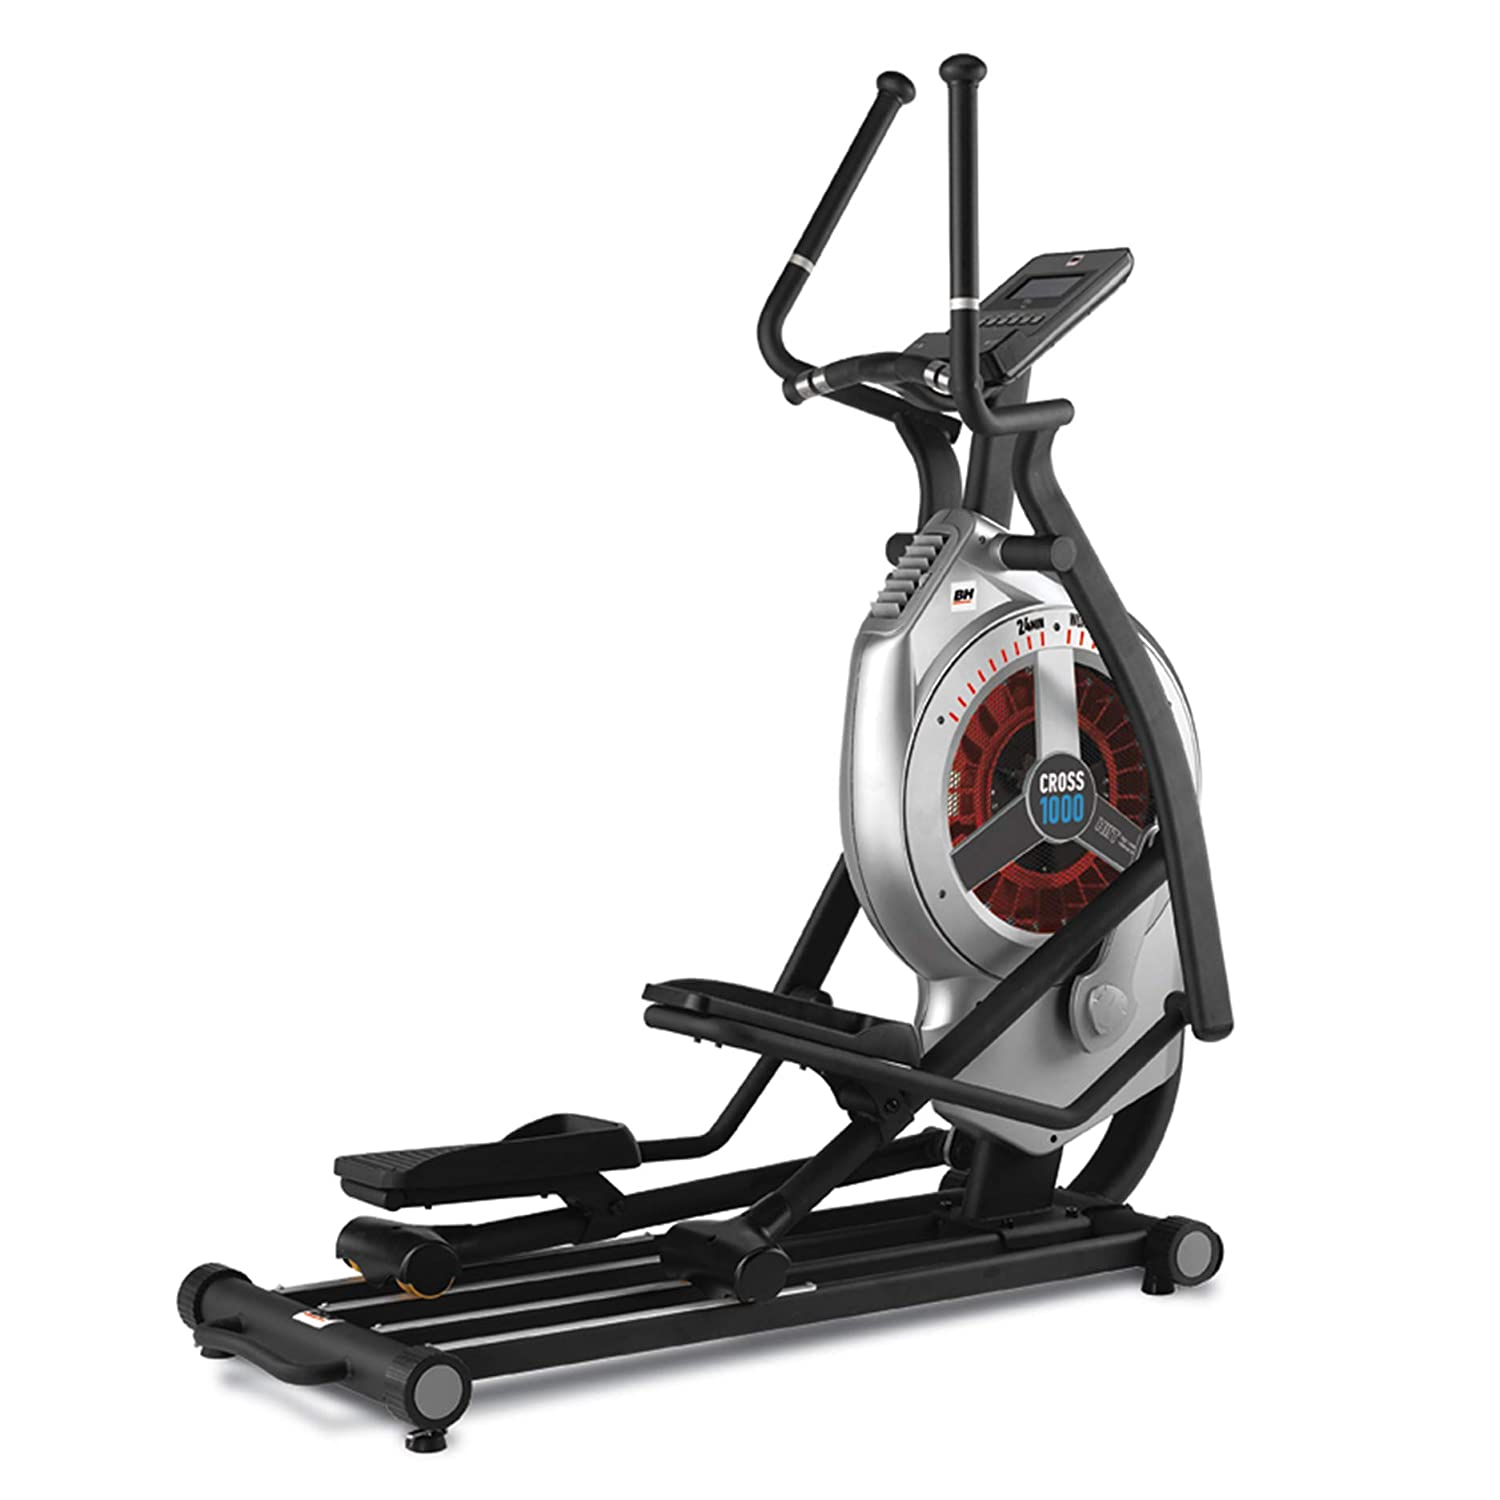 BH Fitness - Bicicleta elíptica cross1000 Dual: Amazon.es ...